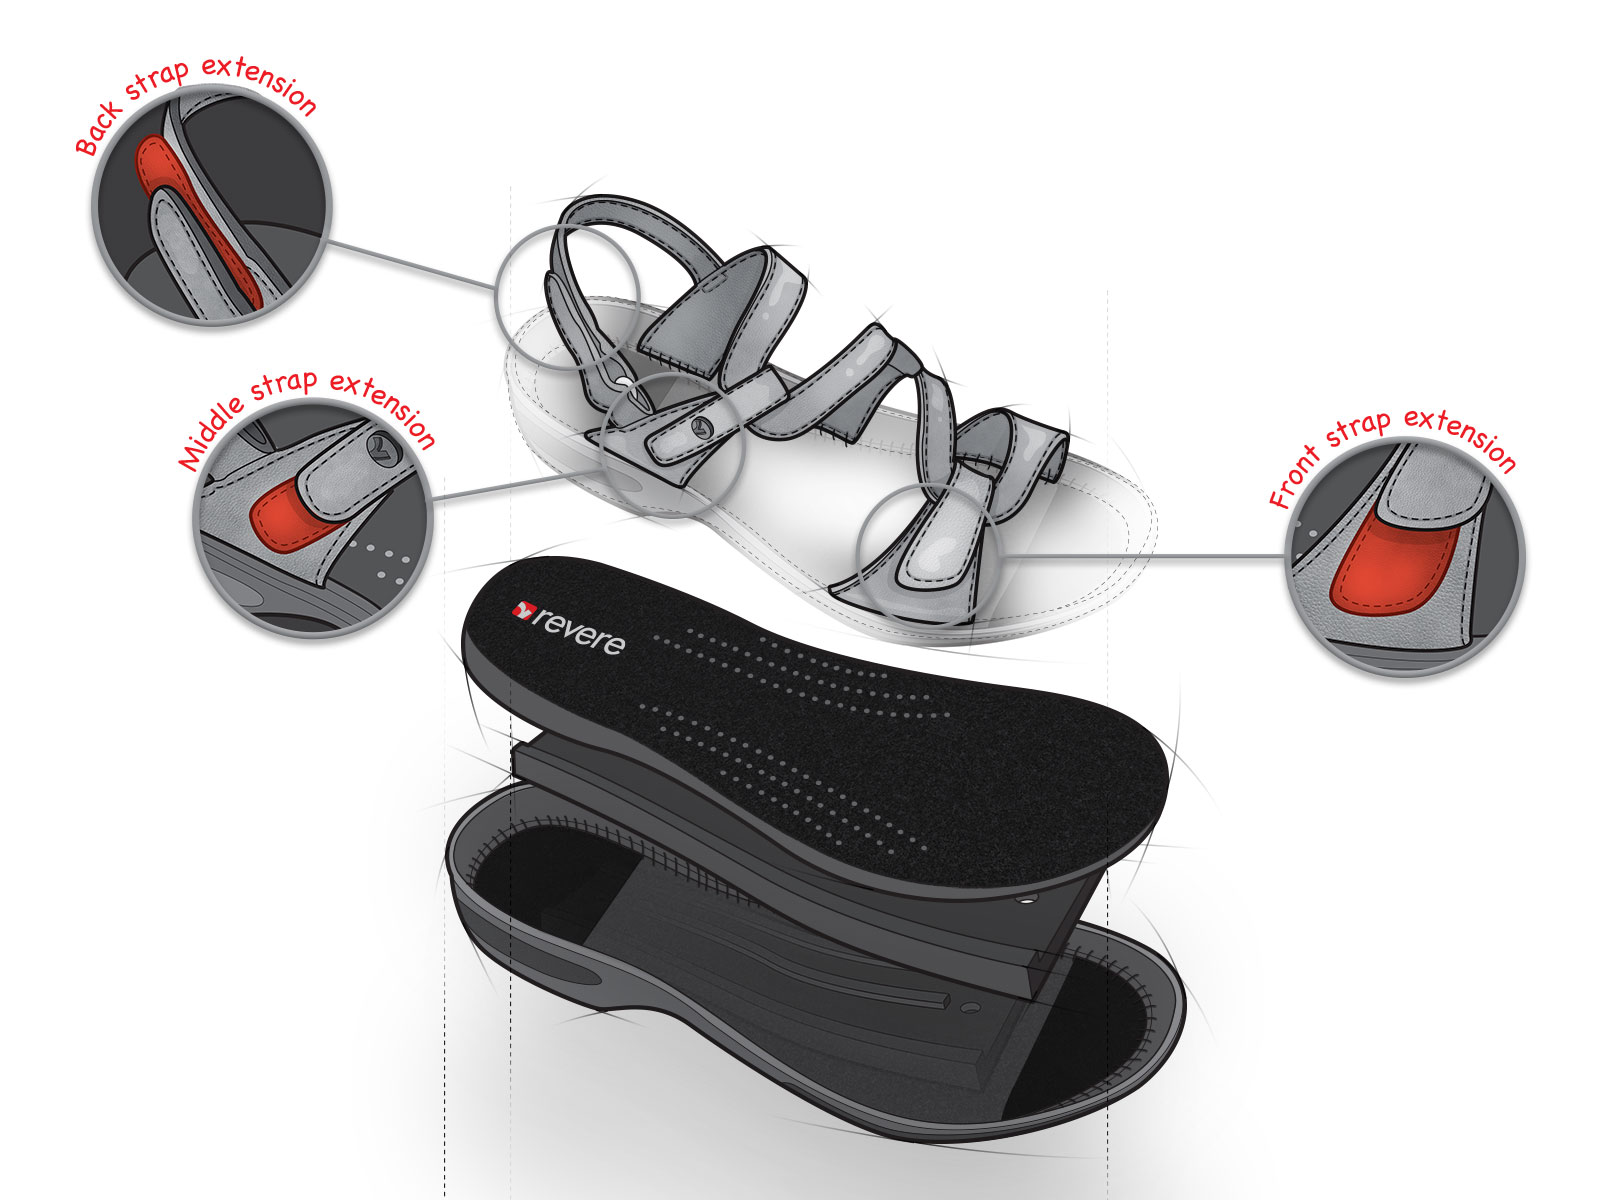 Elevated cutaway technical illustration of medical footware product